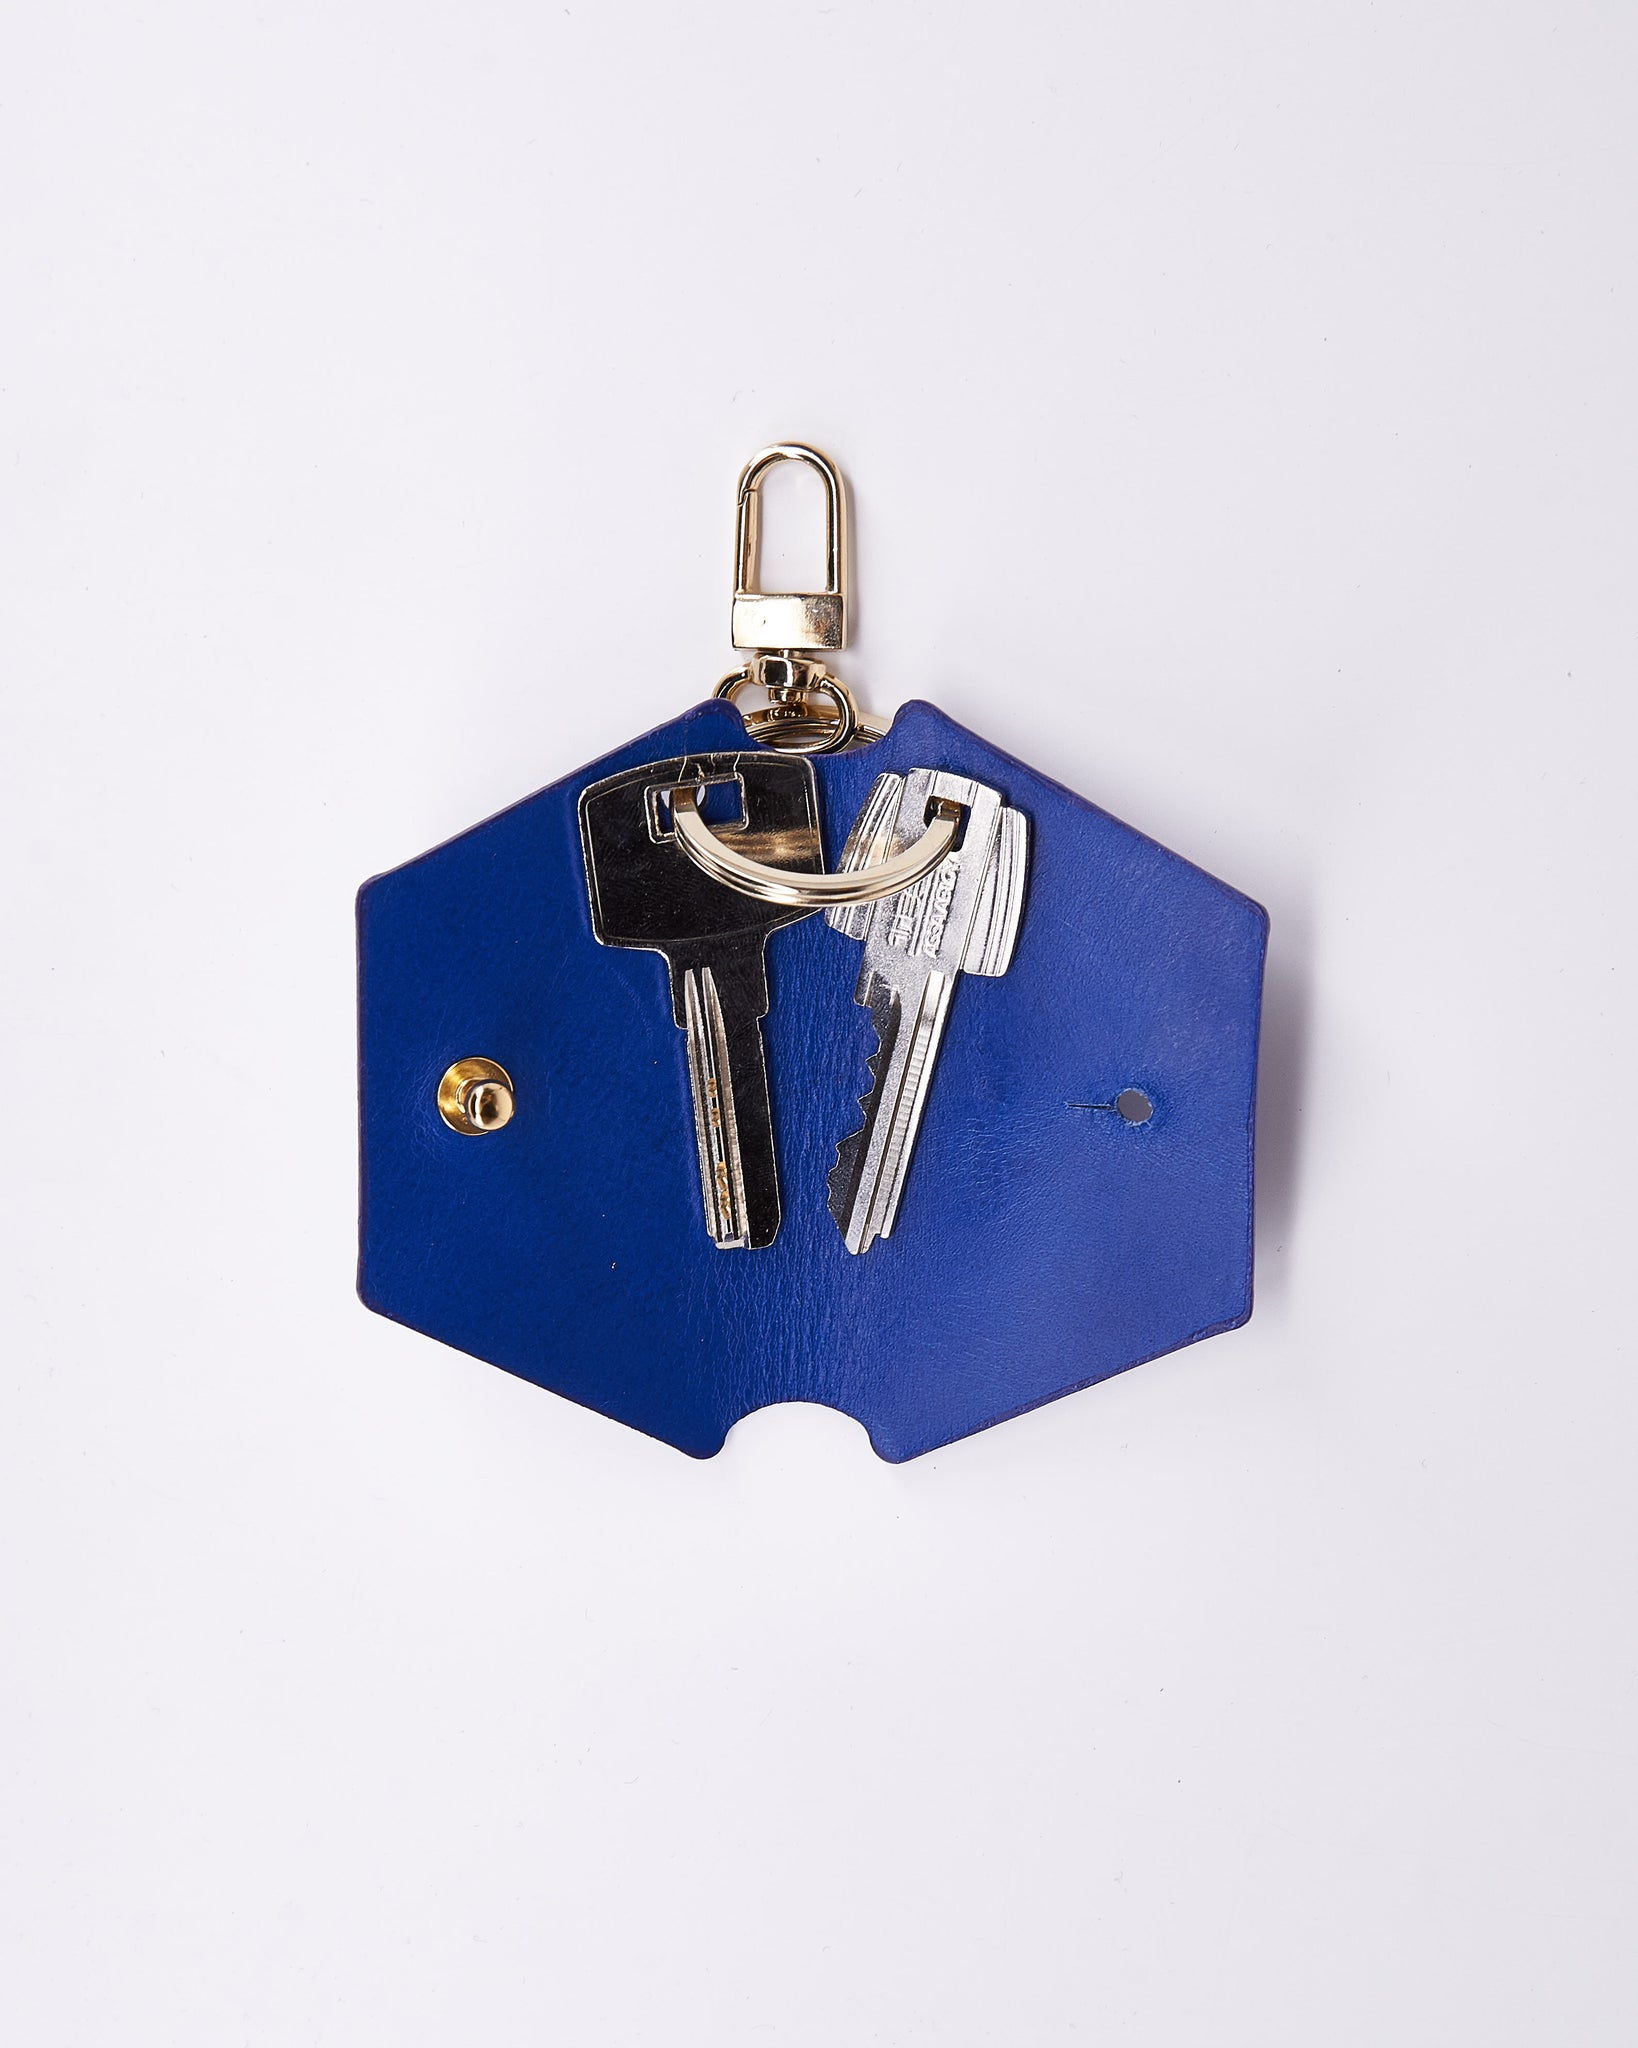 Key Wrap-Nuovum-Leather-Blue-localdesigners-Barcelona-Nuovum-Handmade-2